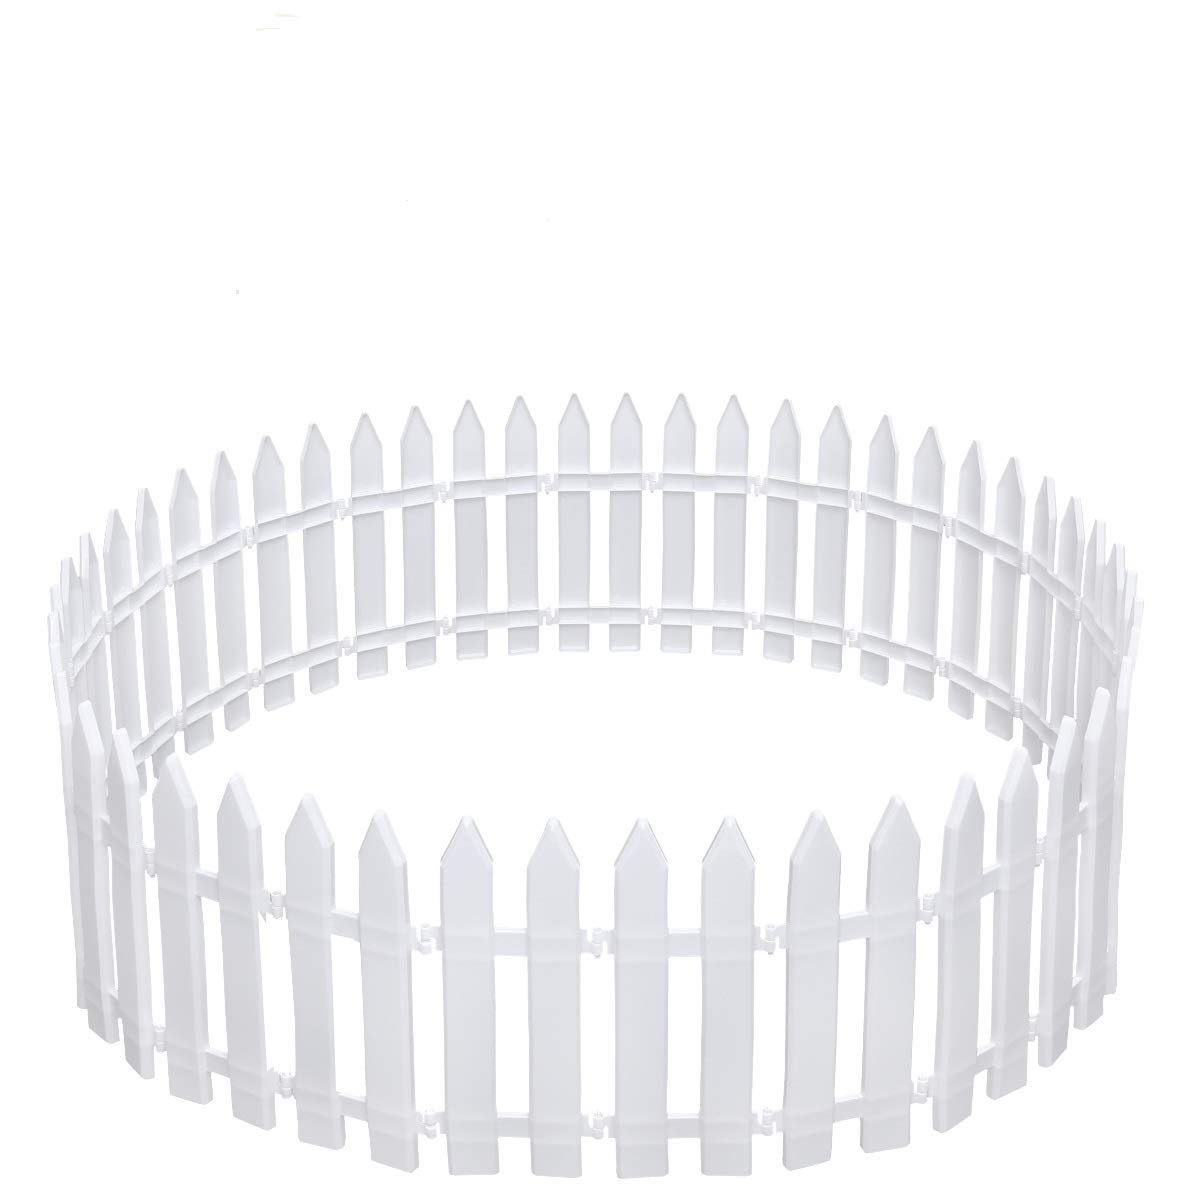 Amosfun White Plastic Picket Fence Christmas Trees Decorating for Xmas Tree Home Wedding Festive Party, Pack of 25